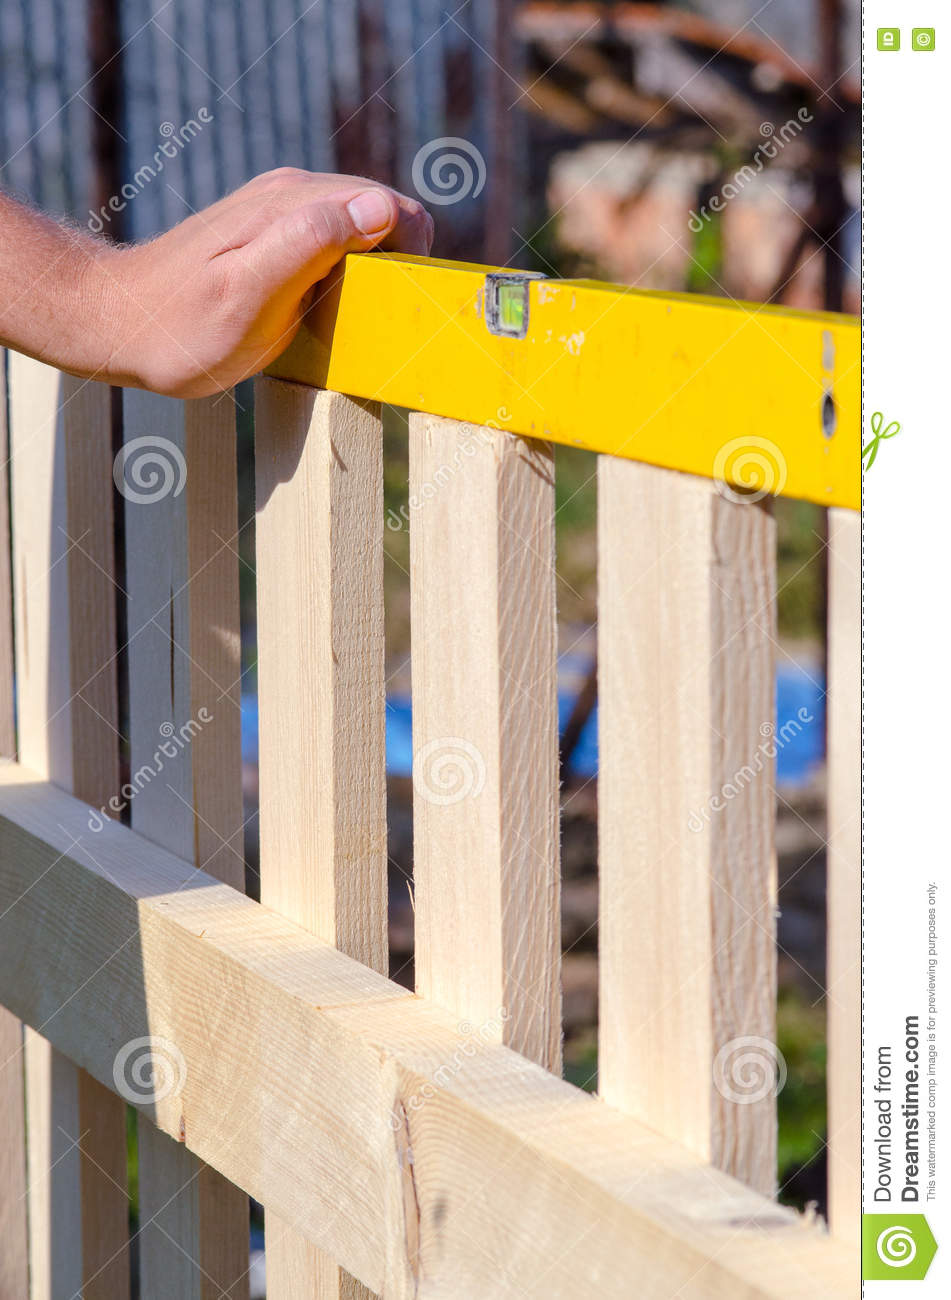 Man building a wooden fence and checking with spirit level. Close up of his hand and the tool in a DIY concept.